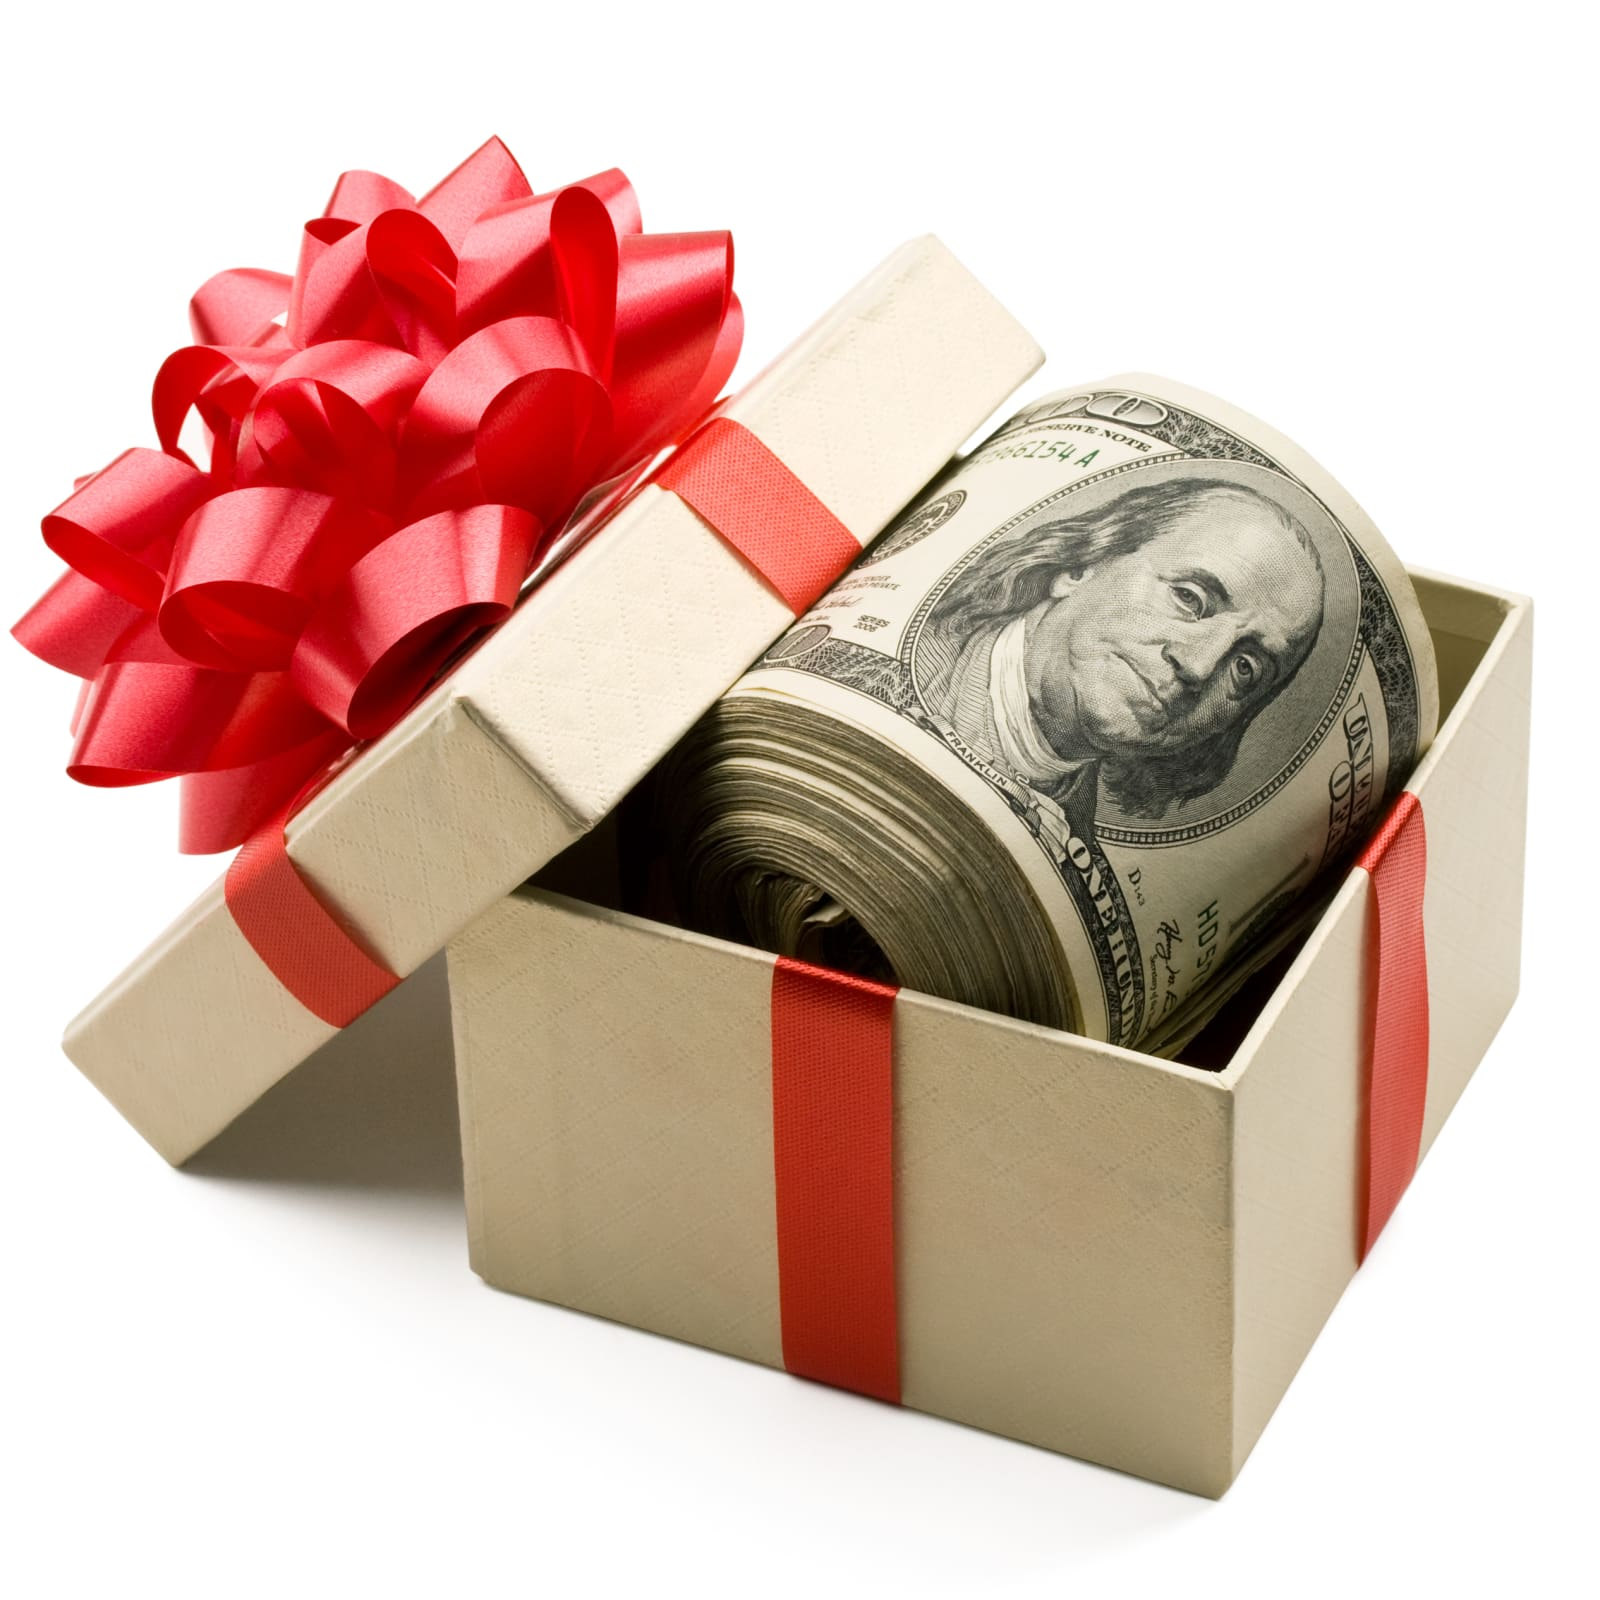 Gift Money For Down Payments Lender Requirements And Tax Concerns Wiring Internationally Irs Valuepenguin